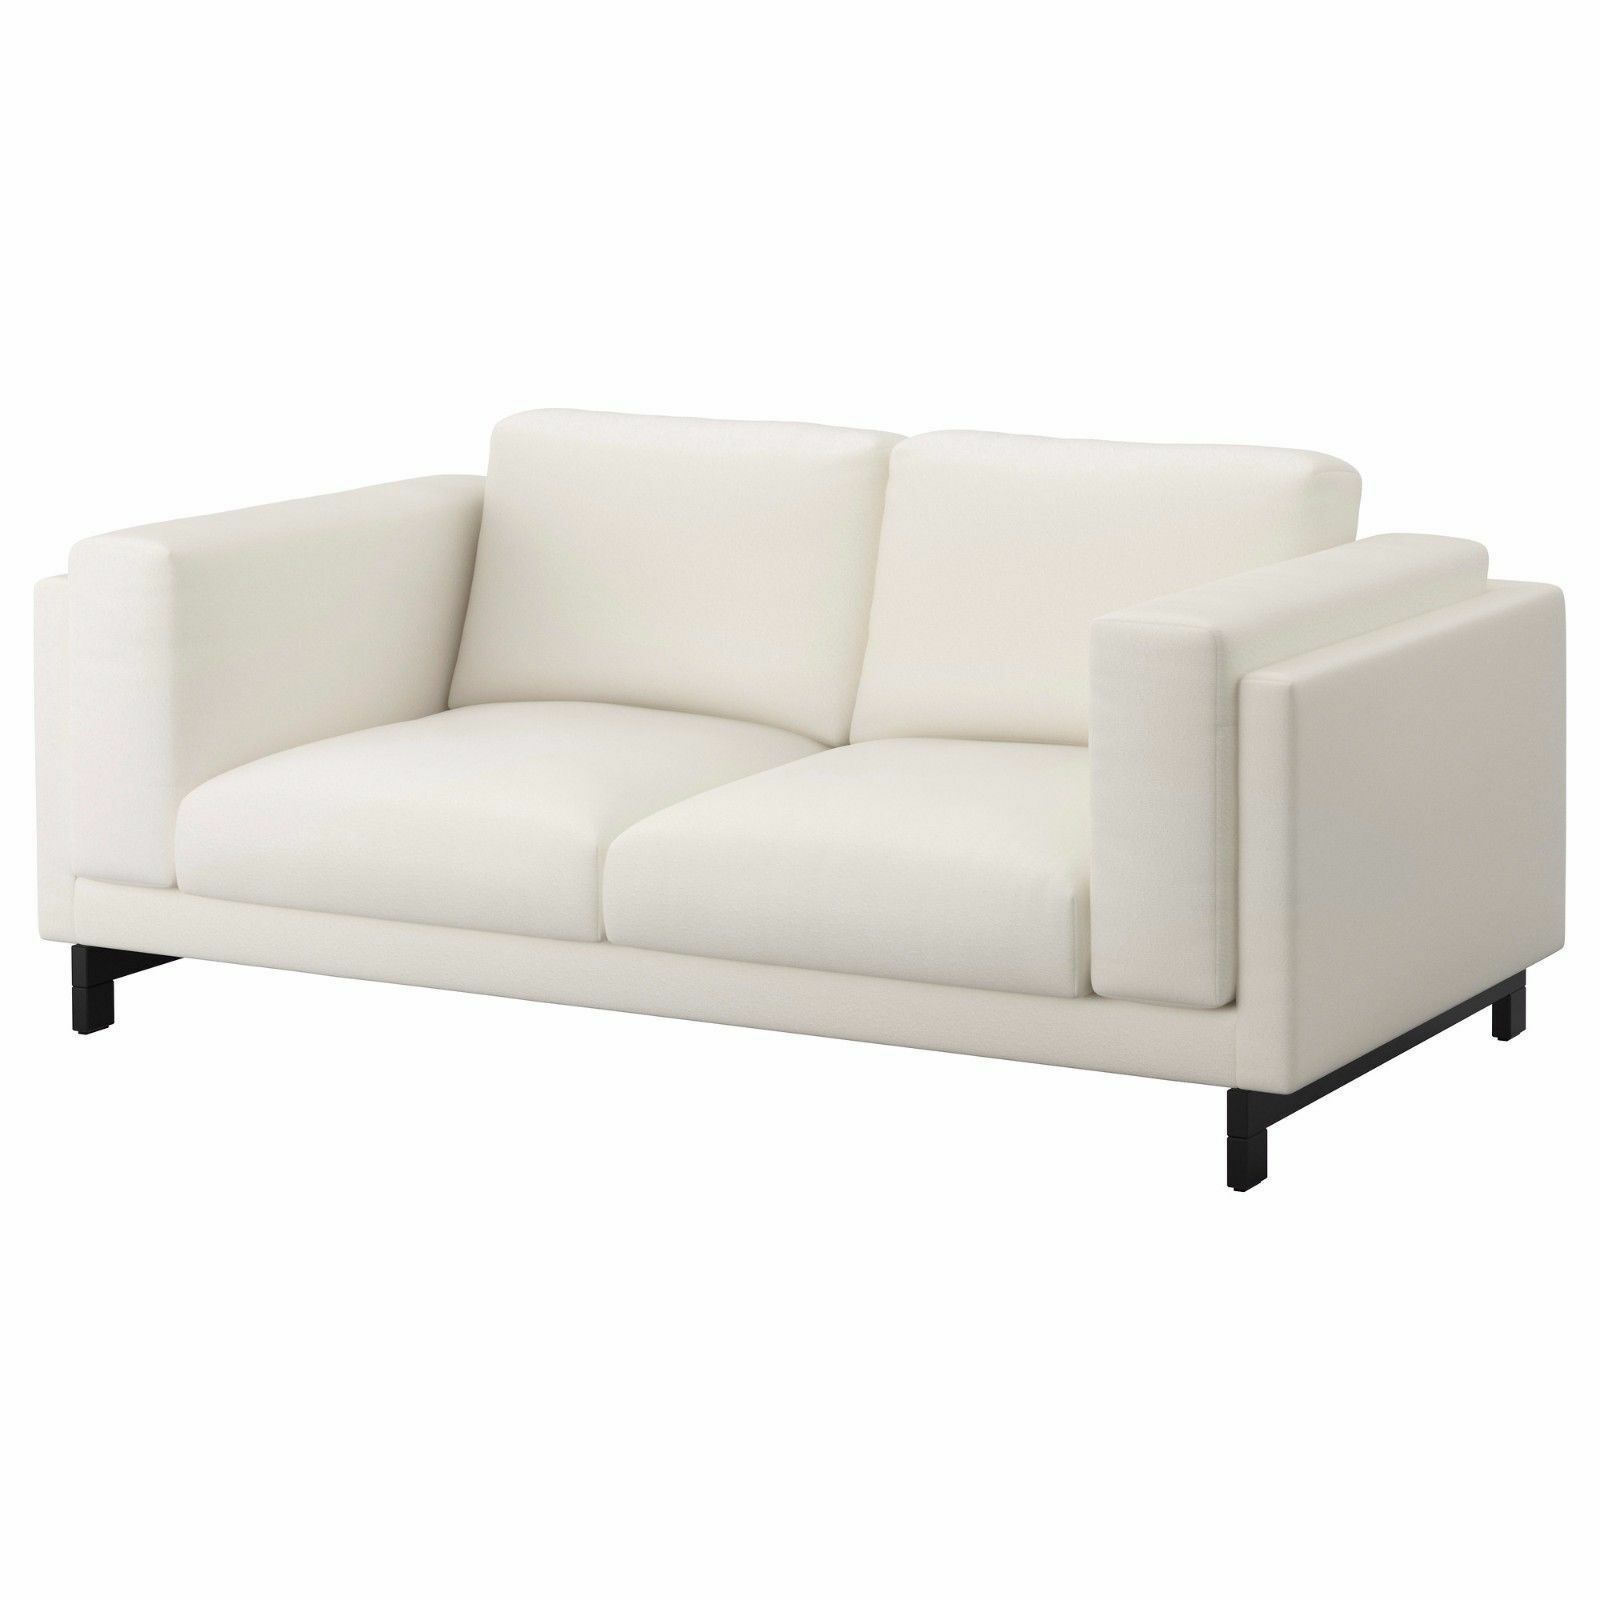 New Ikea Nockeby 2 Seat Loveseat Couch Cover Slipcover Risane White White Sofa Whitesofa In 2020 Ikea Sofa Couch Covers Slipcovers Love Seat